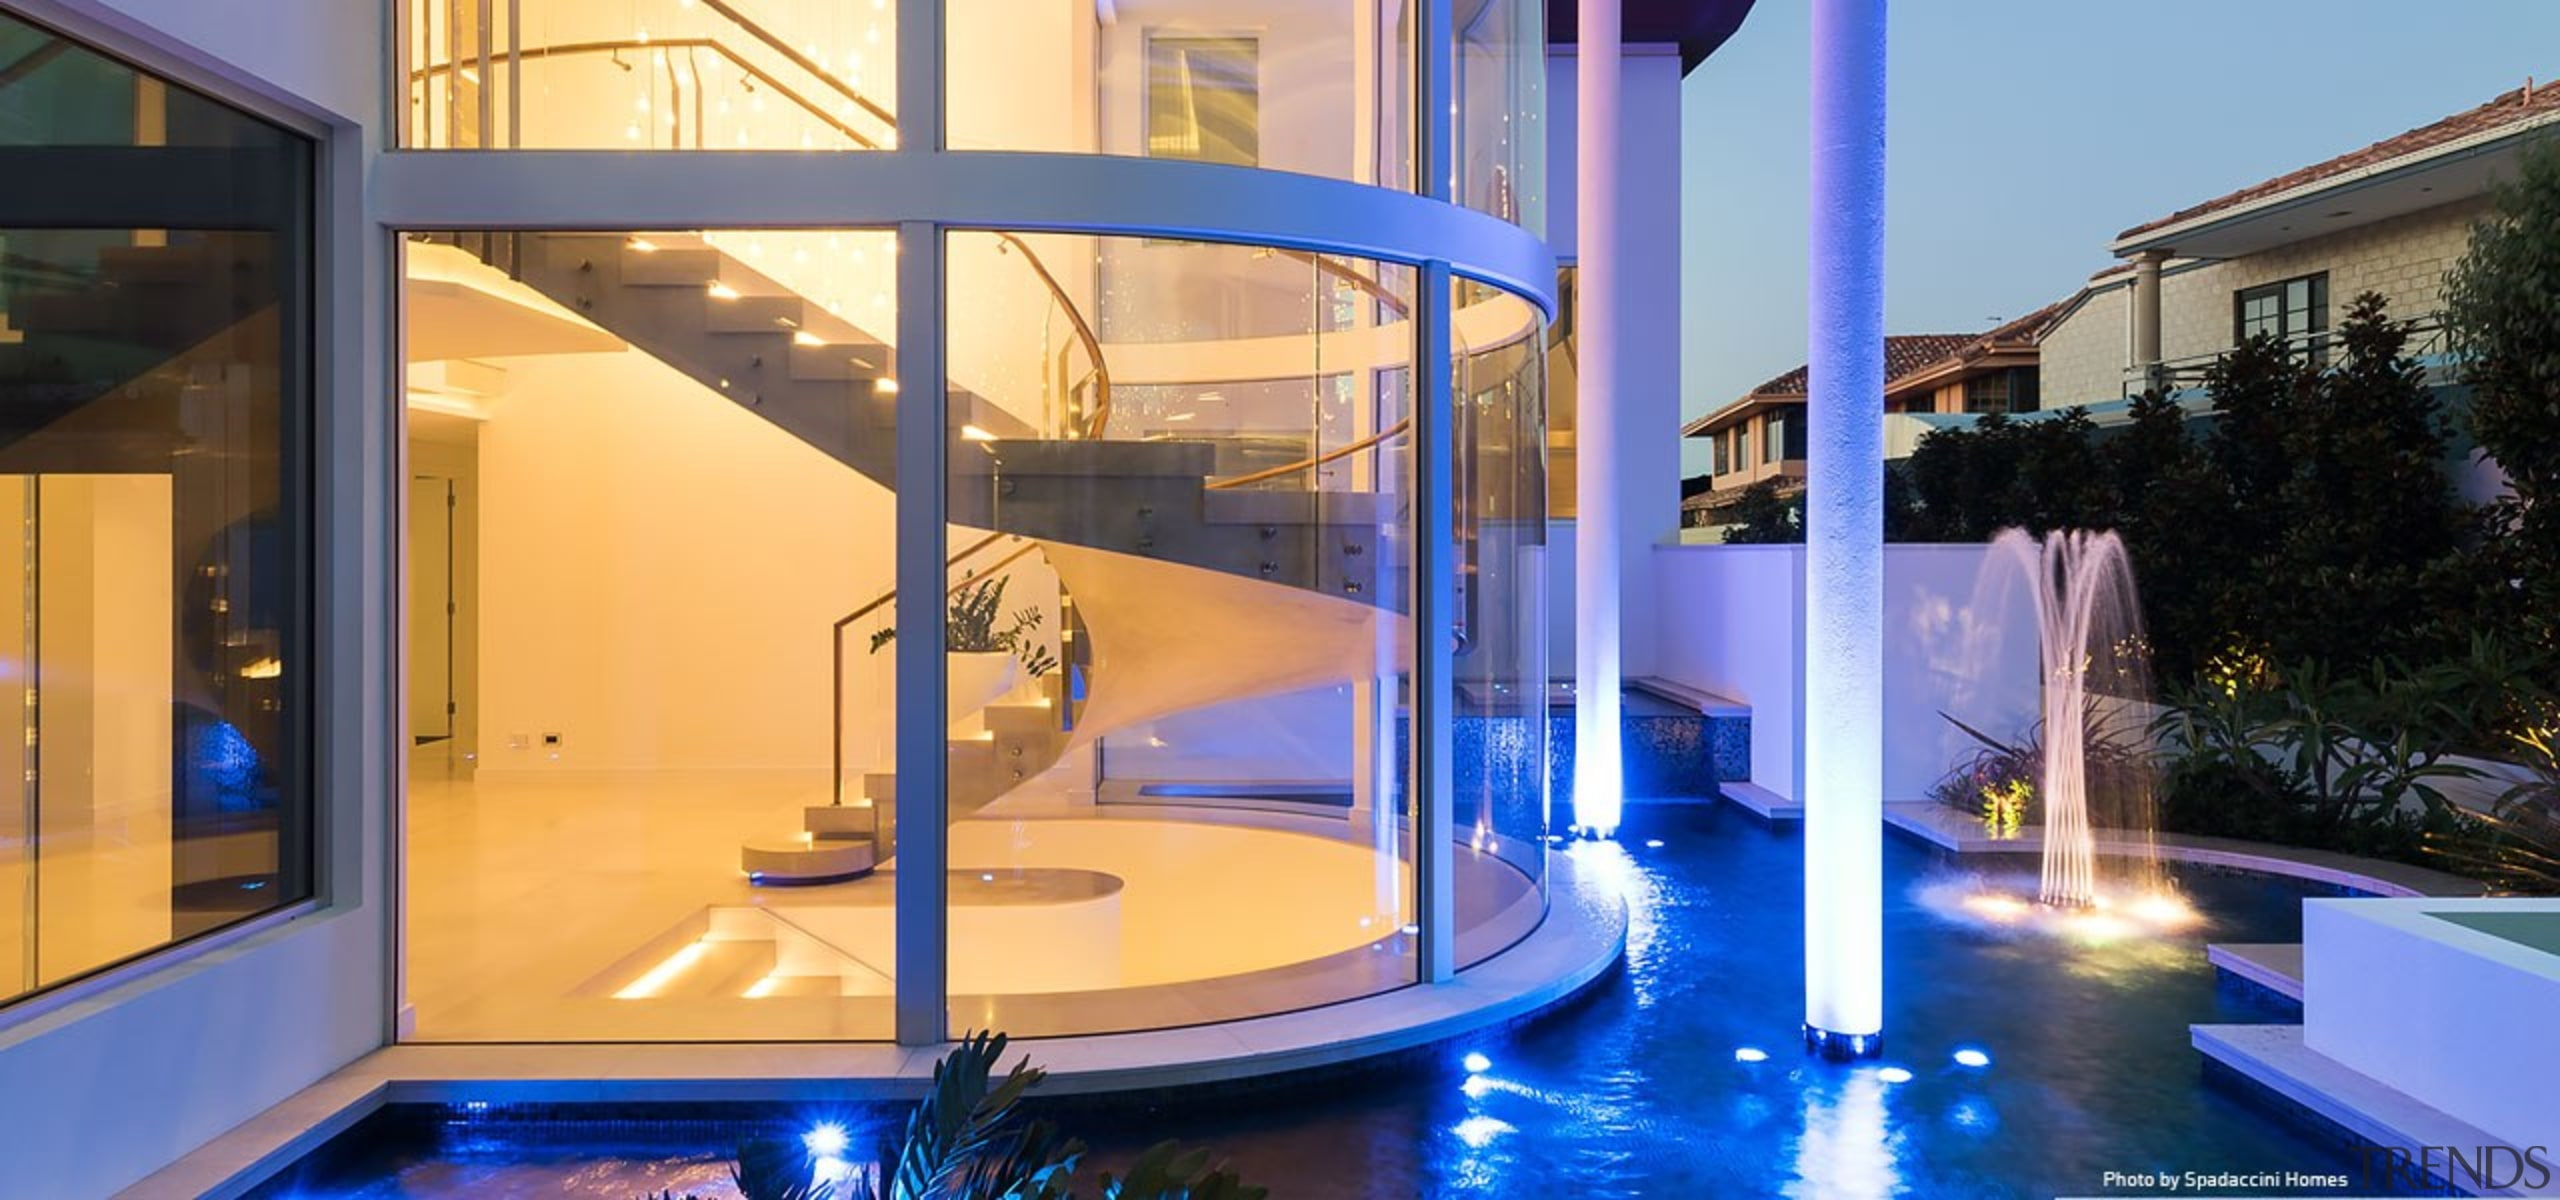 Sorrento Residence 3 - architecture | building | architecture, building, glass, home, house, interior design, leisure, property, real estate, swimming pool, water feature, orange, blue